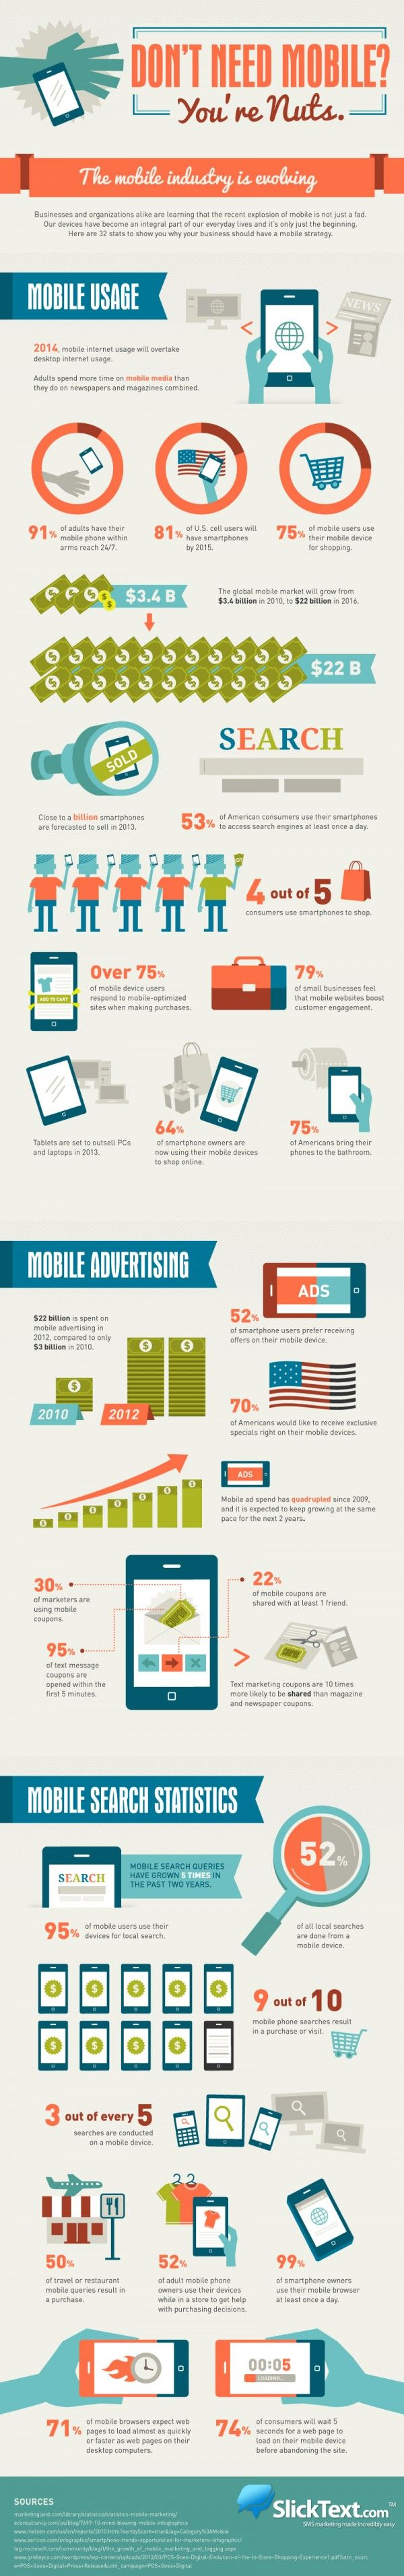 Understanding the mobile user habits to reach your marketing goals # Mobile Marketing Indonesia